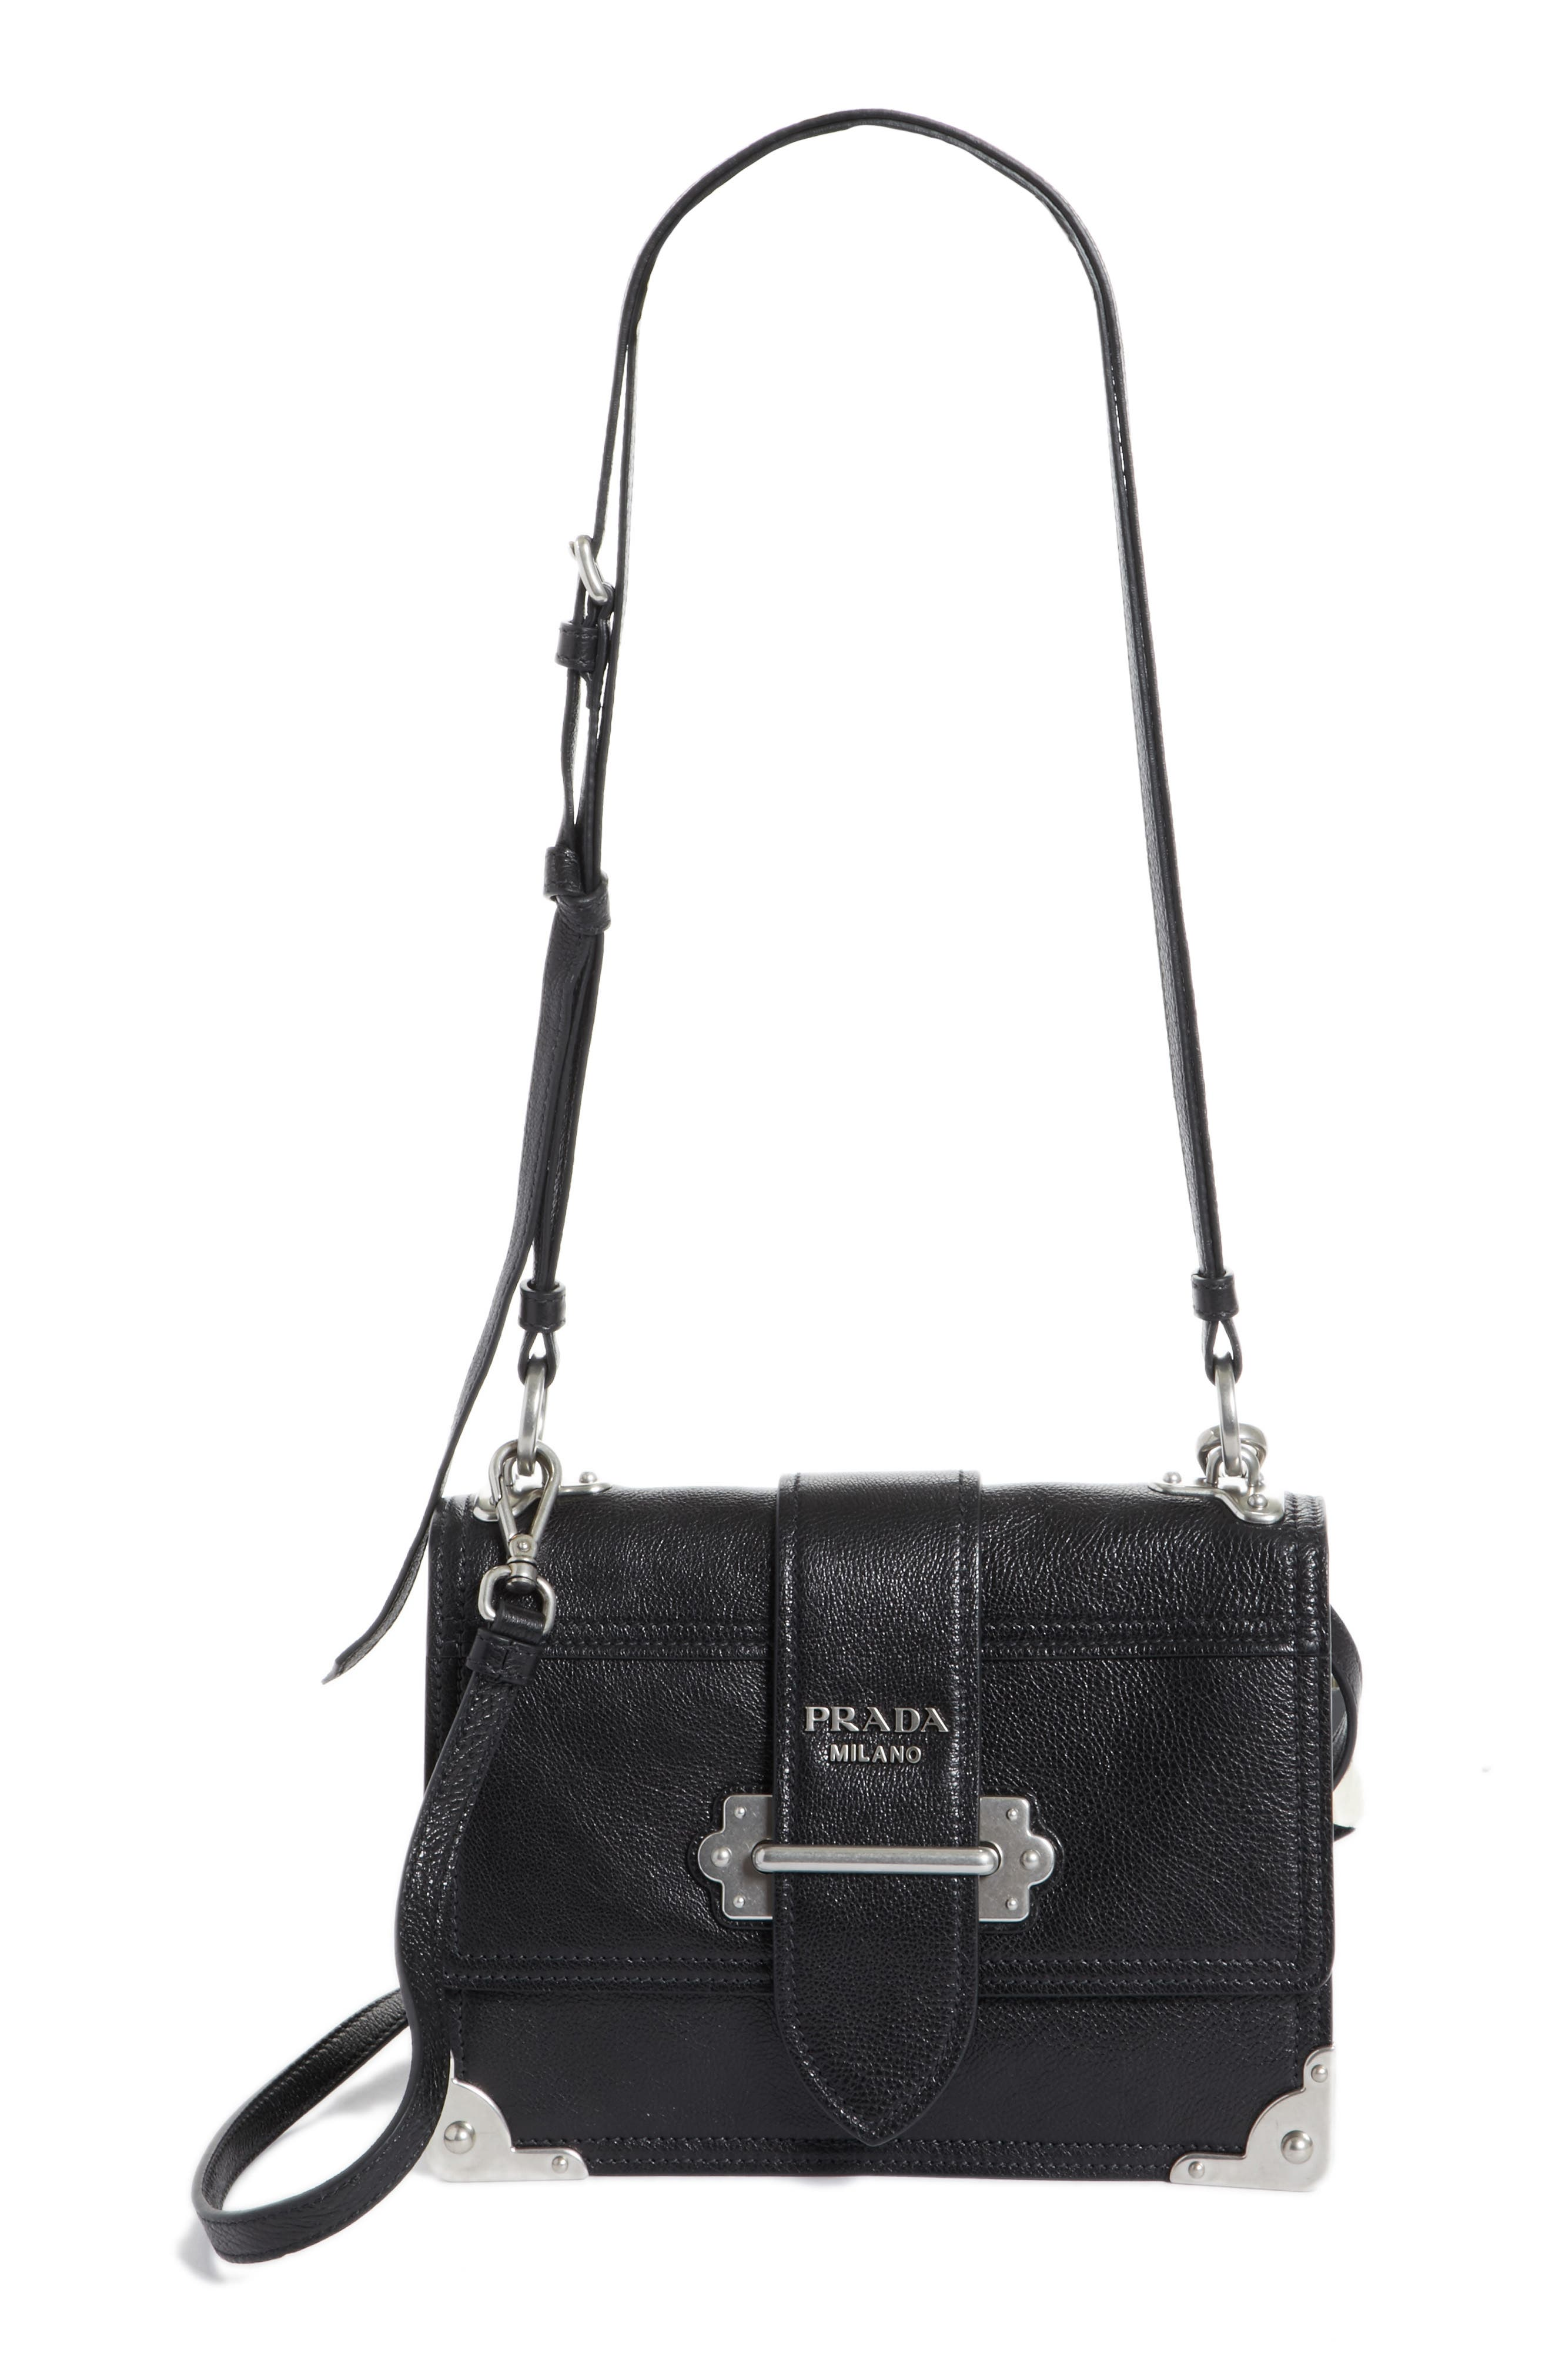 PRADA,                             Cahier Glace Calfskin Convertible Shoulder Bag,                             Main thumbnail 1, color,                             001